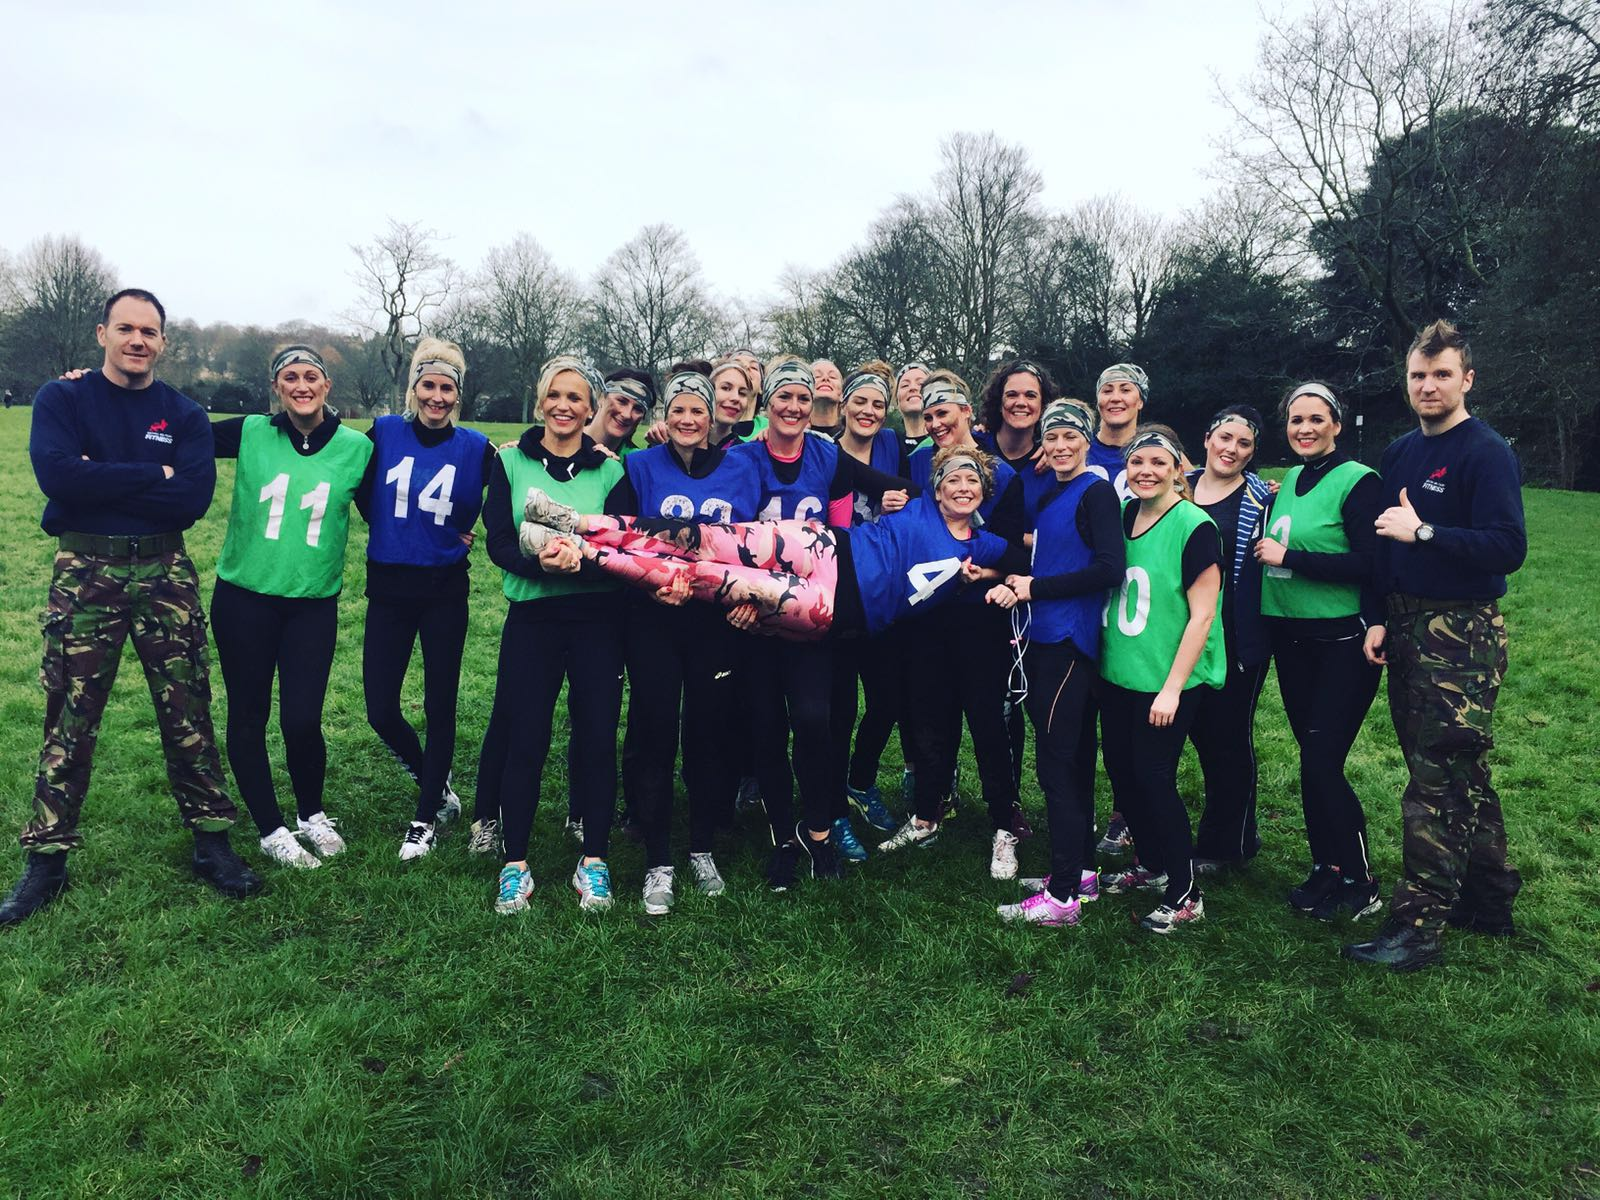 The group turned the typical hen do on its head to take part in a military style fitness session